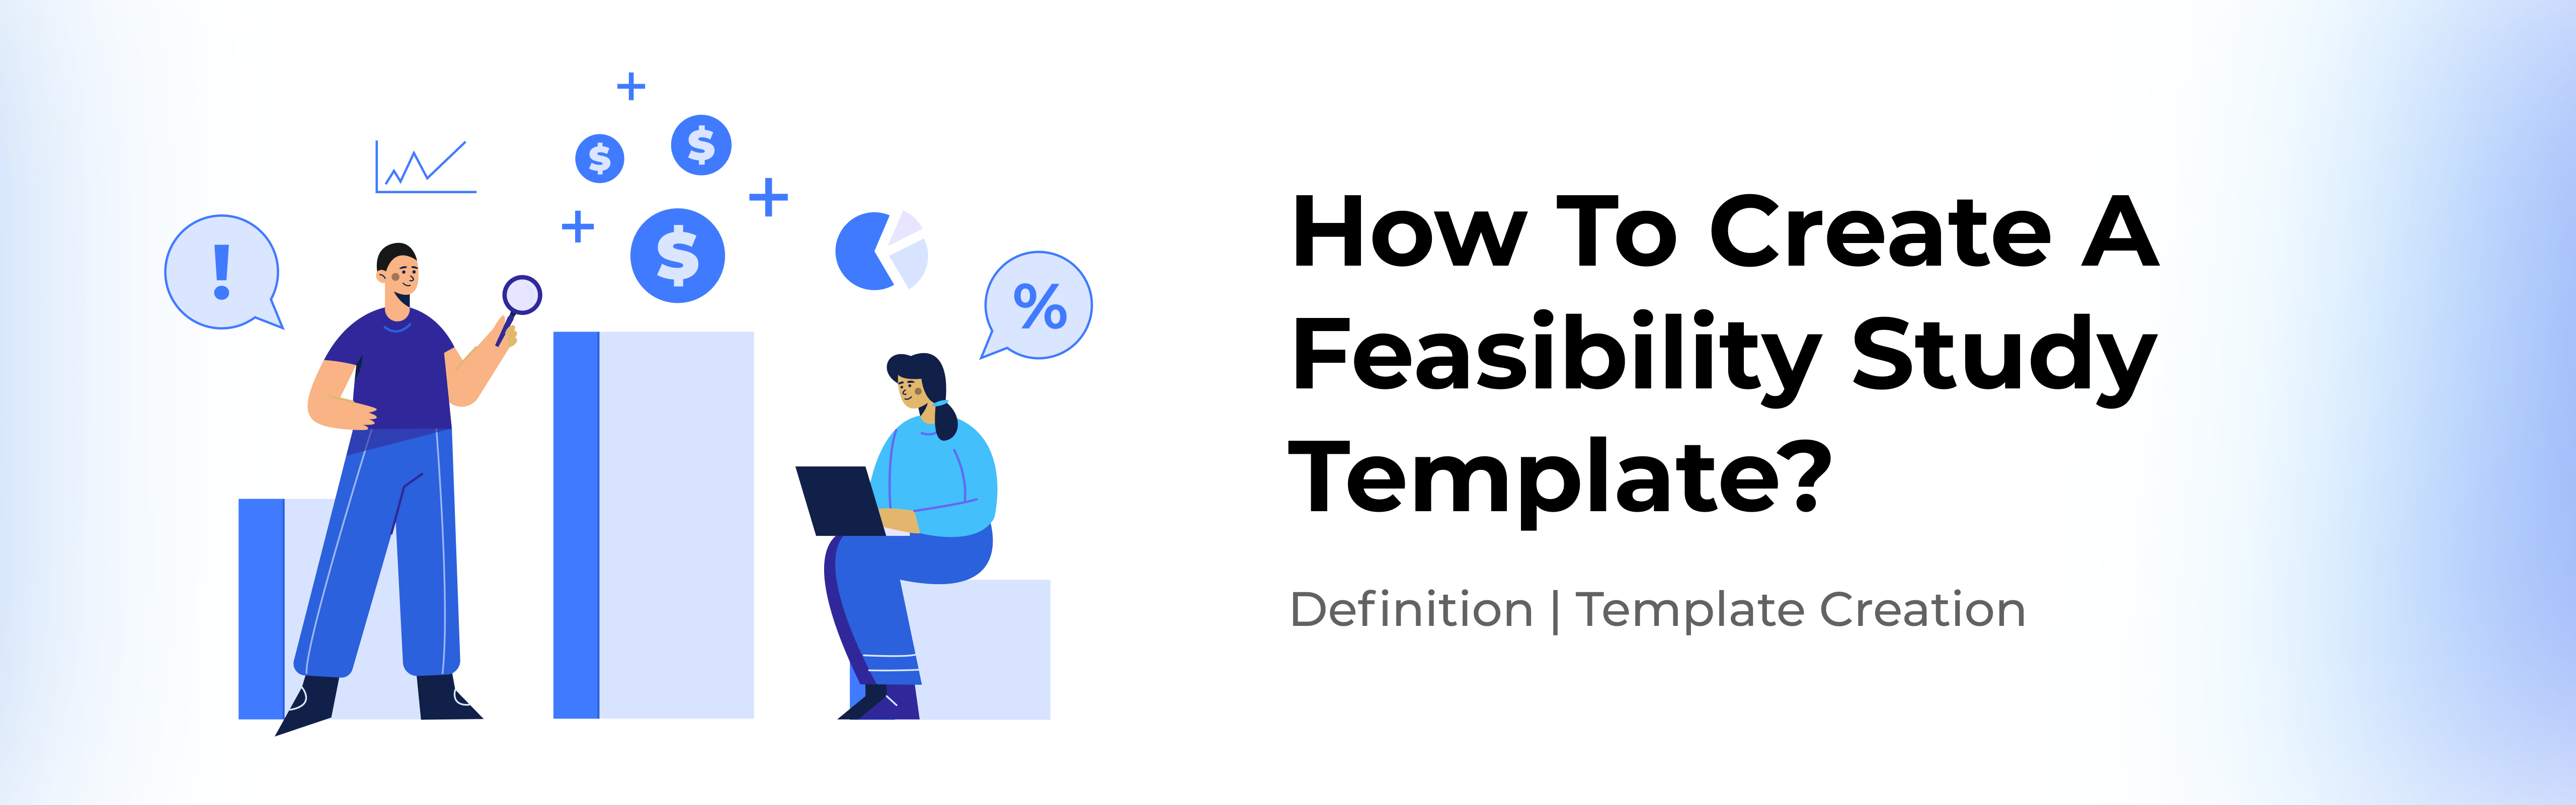 how-to-create-feasibility-study-template